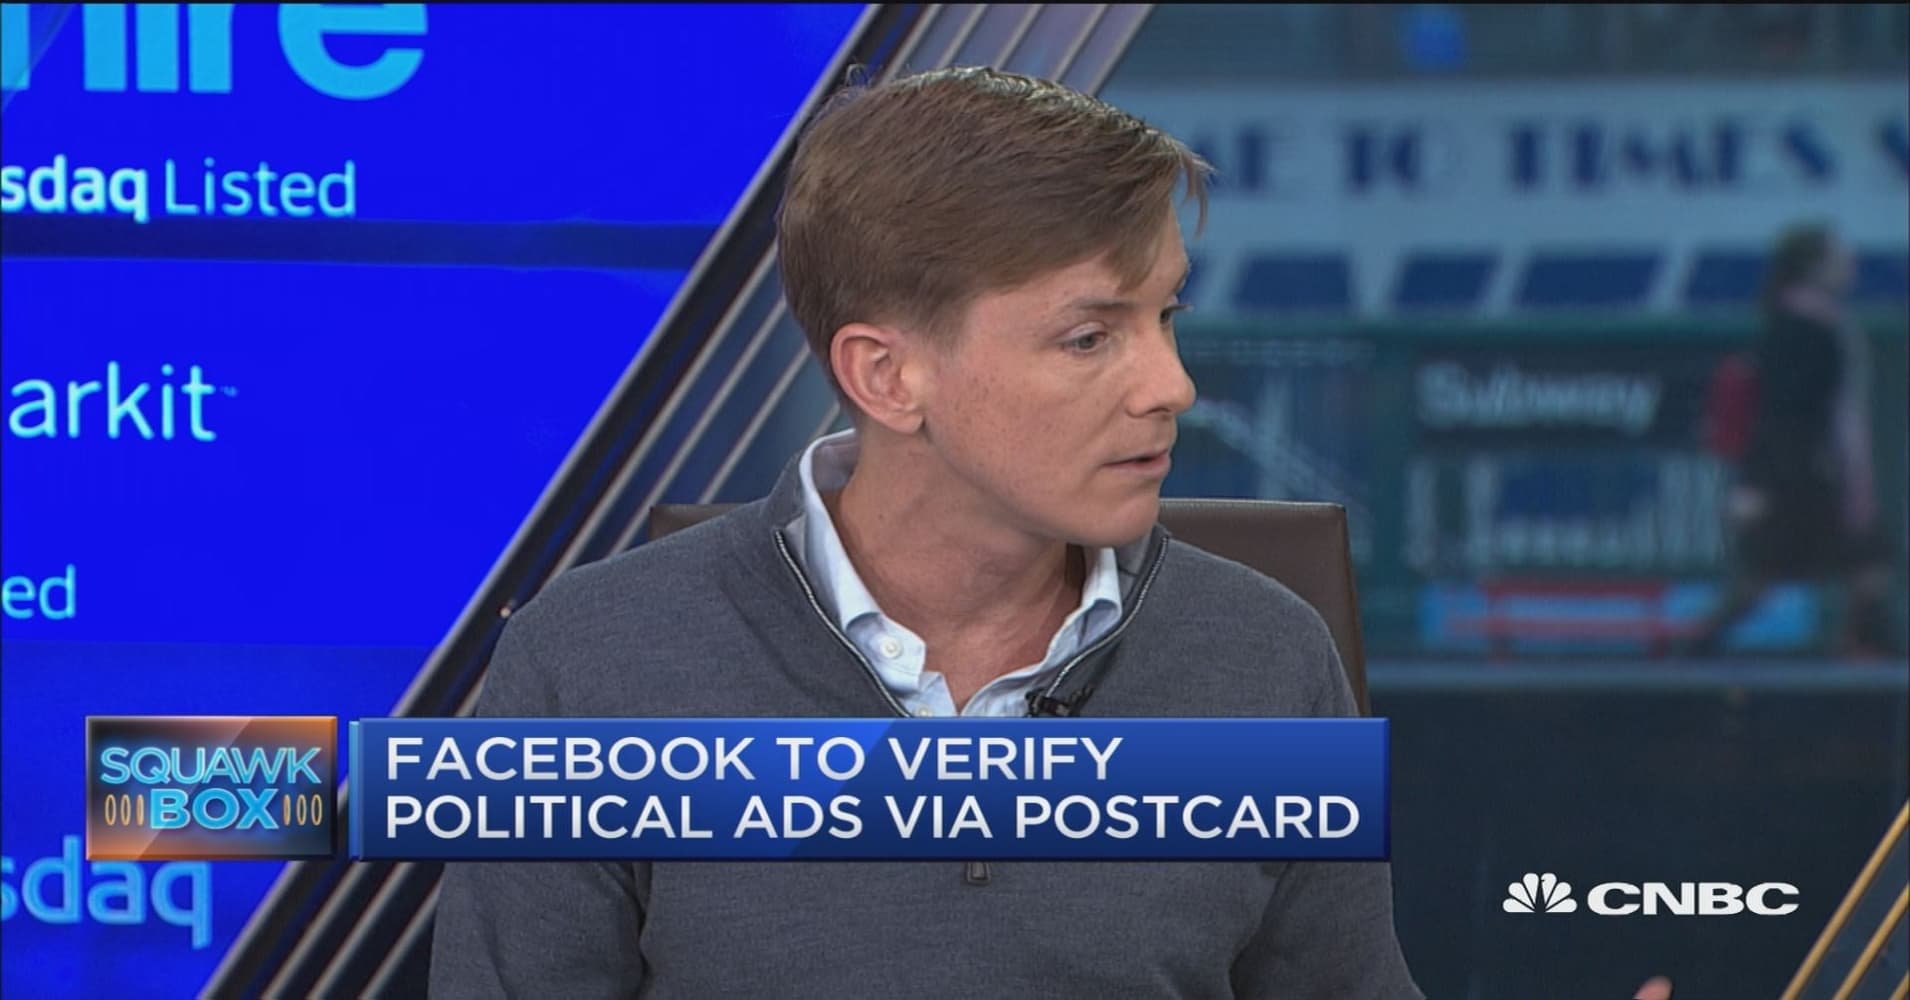 Postcard verification is 'step in the right direction': Facebook co-founder